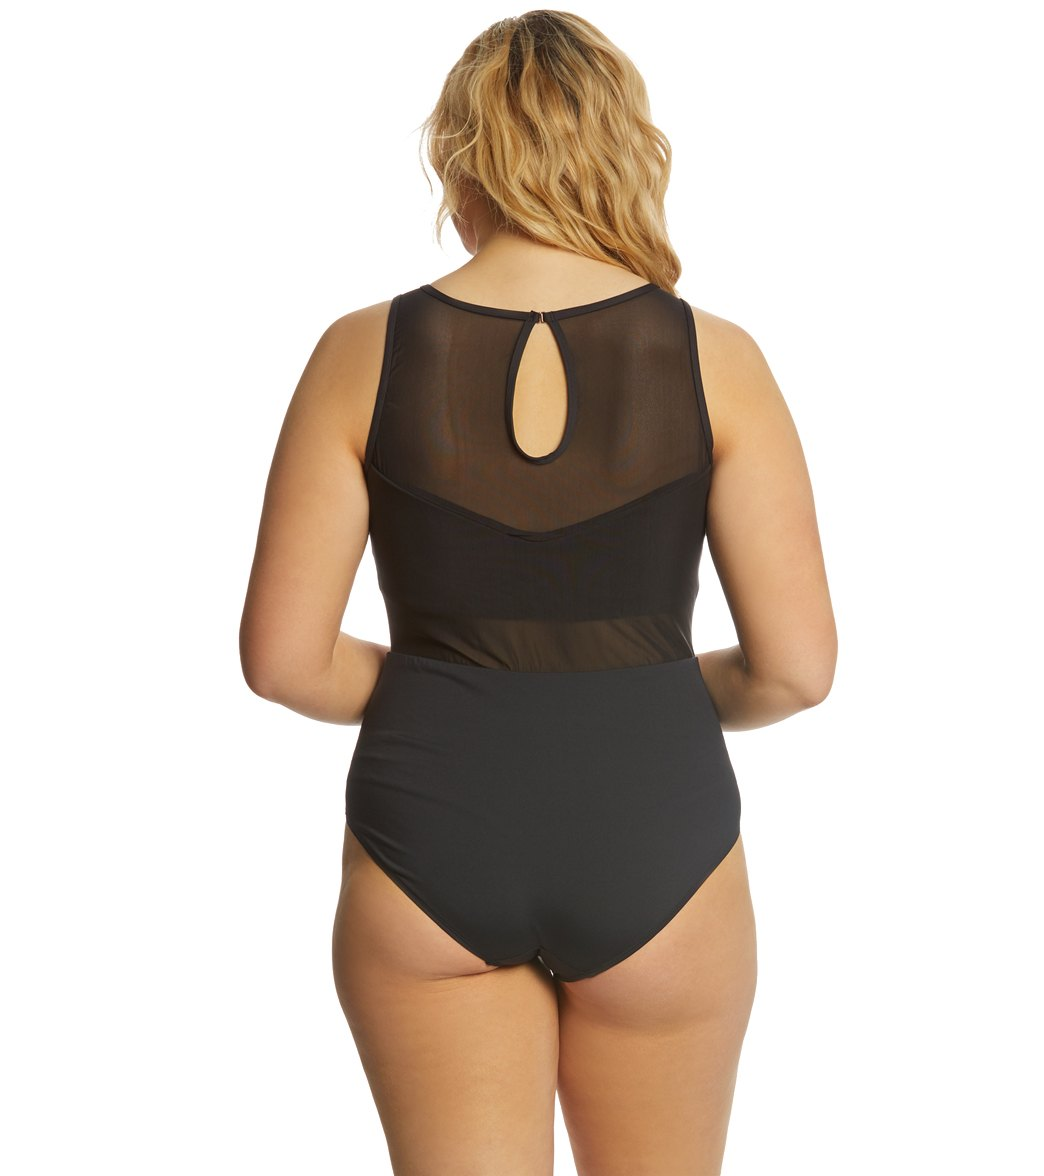 50246309cd6 Anne Cole Plus Size That's A Wrap Embroidery High Neck One Piece Swimsuit